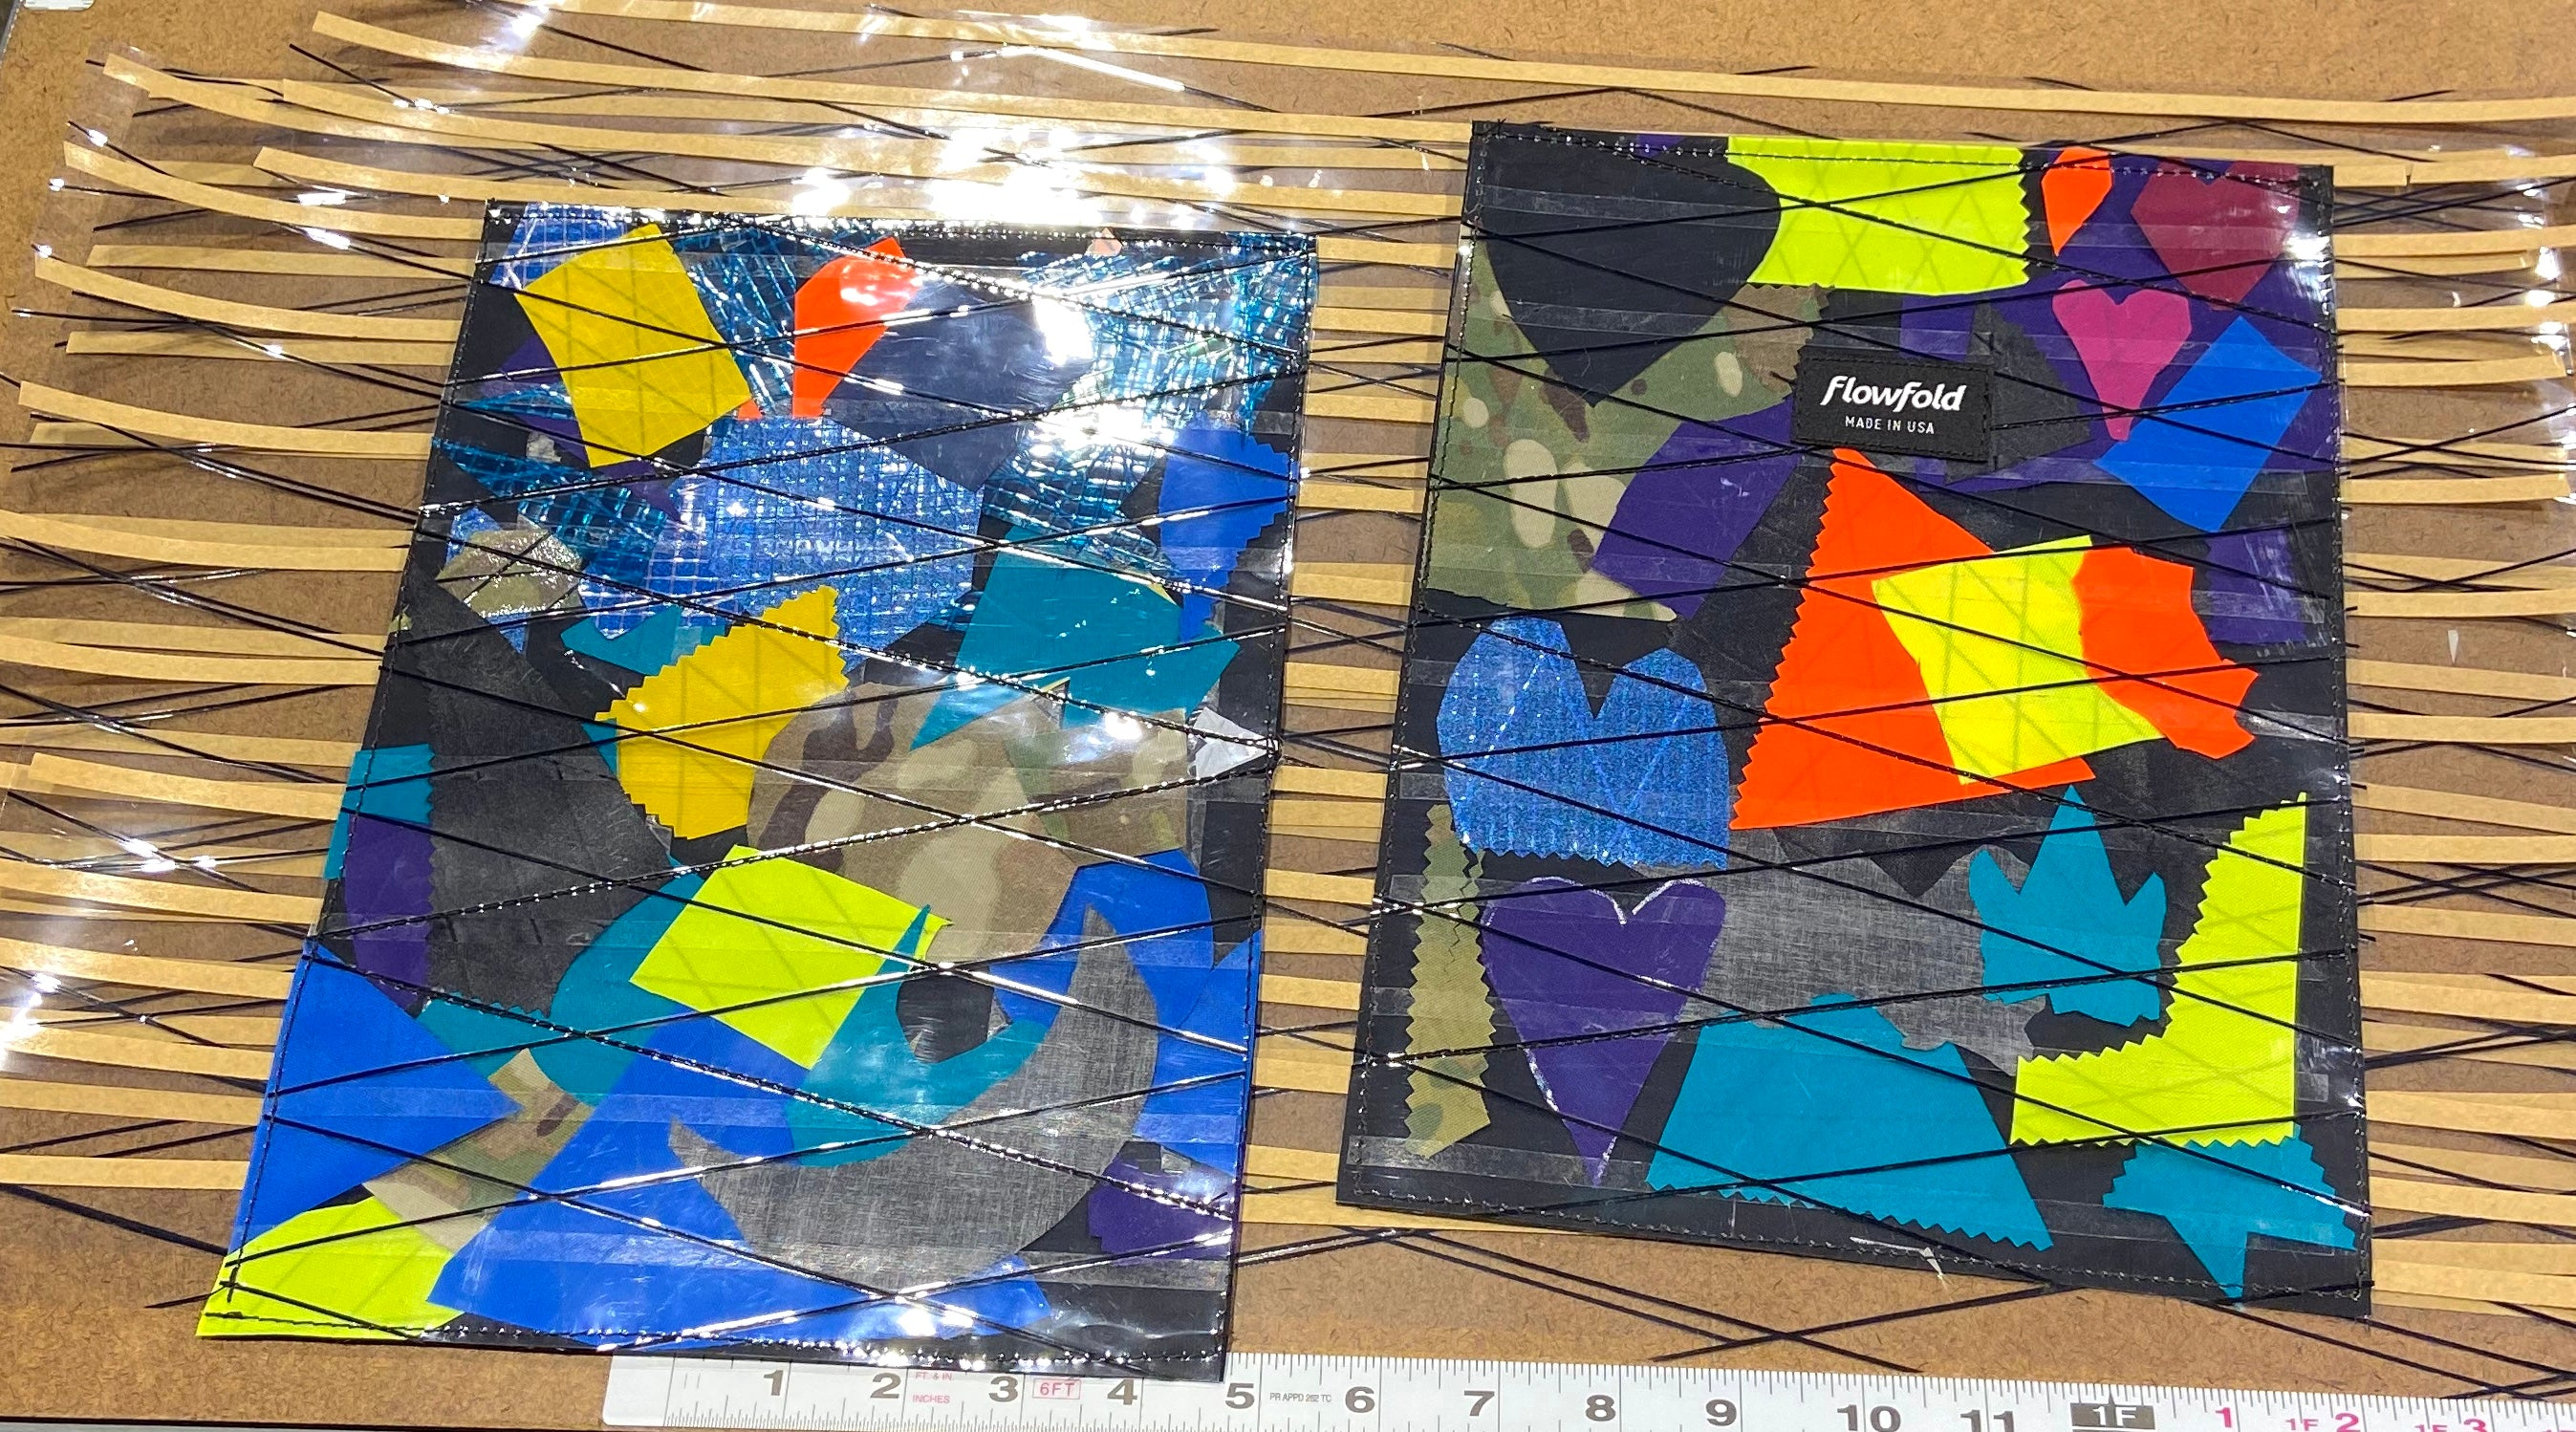 flowfold recycled fabric scraps